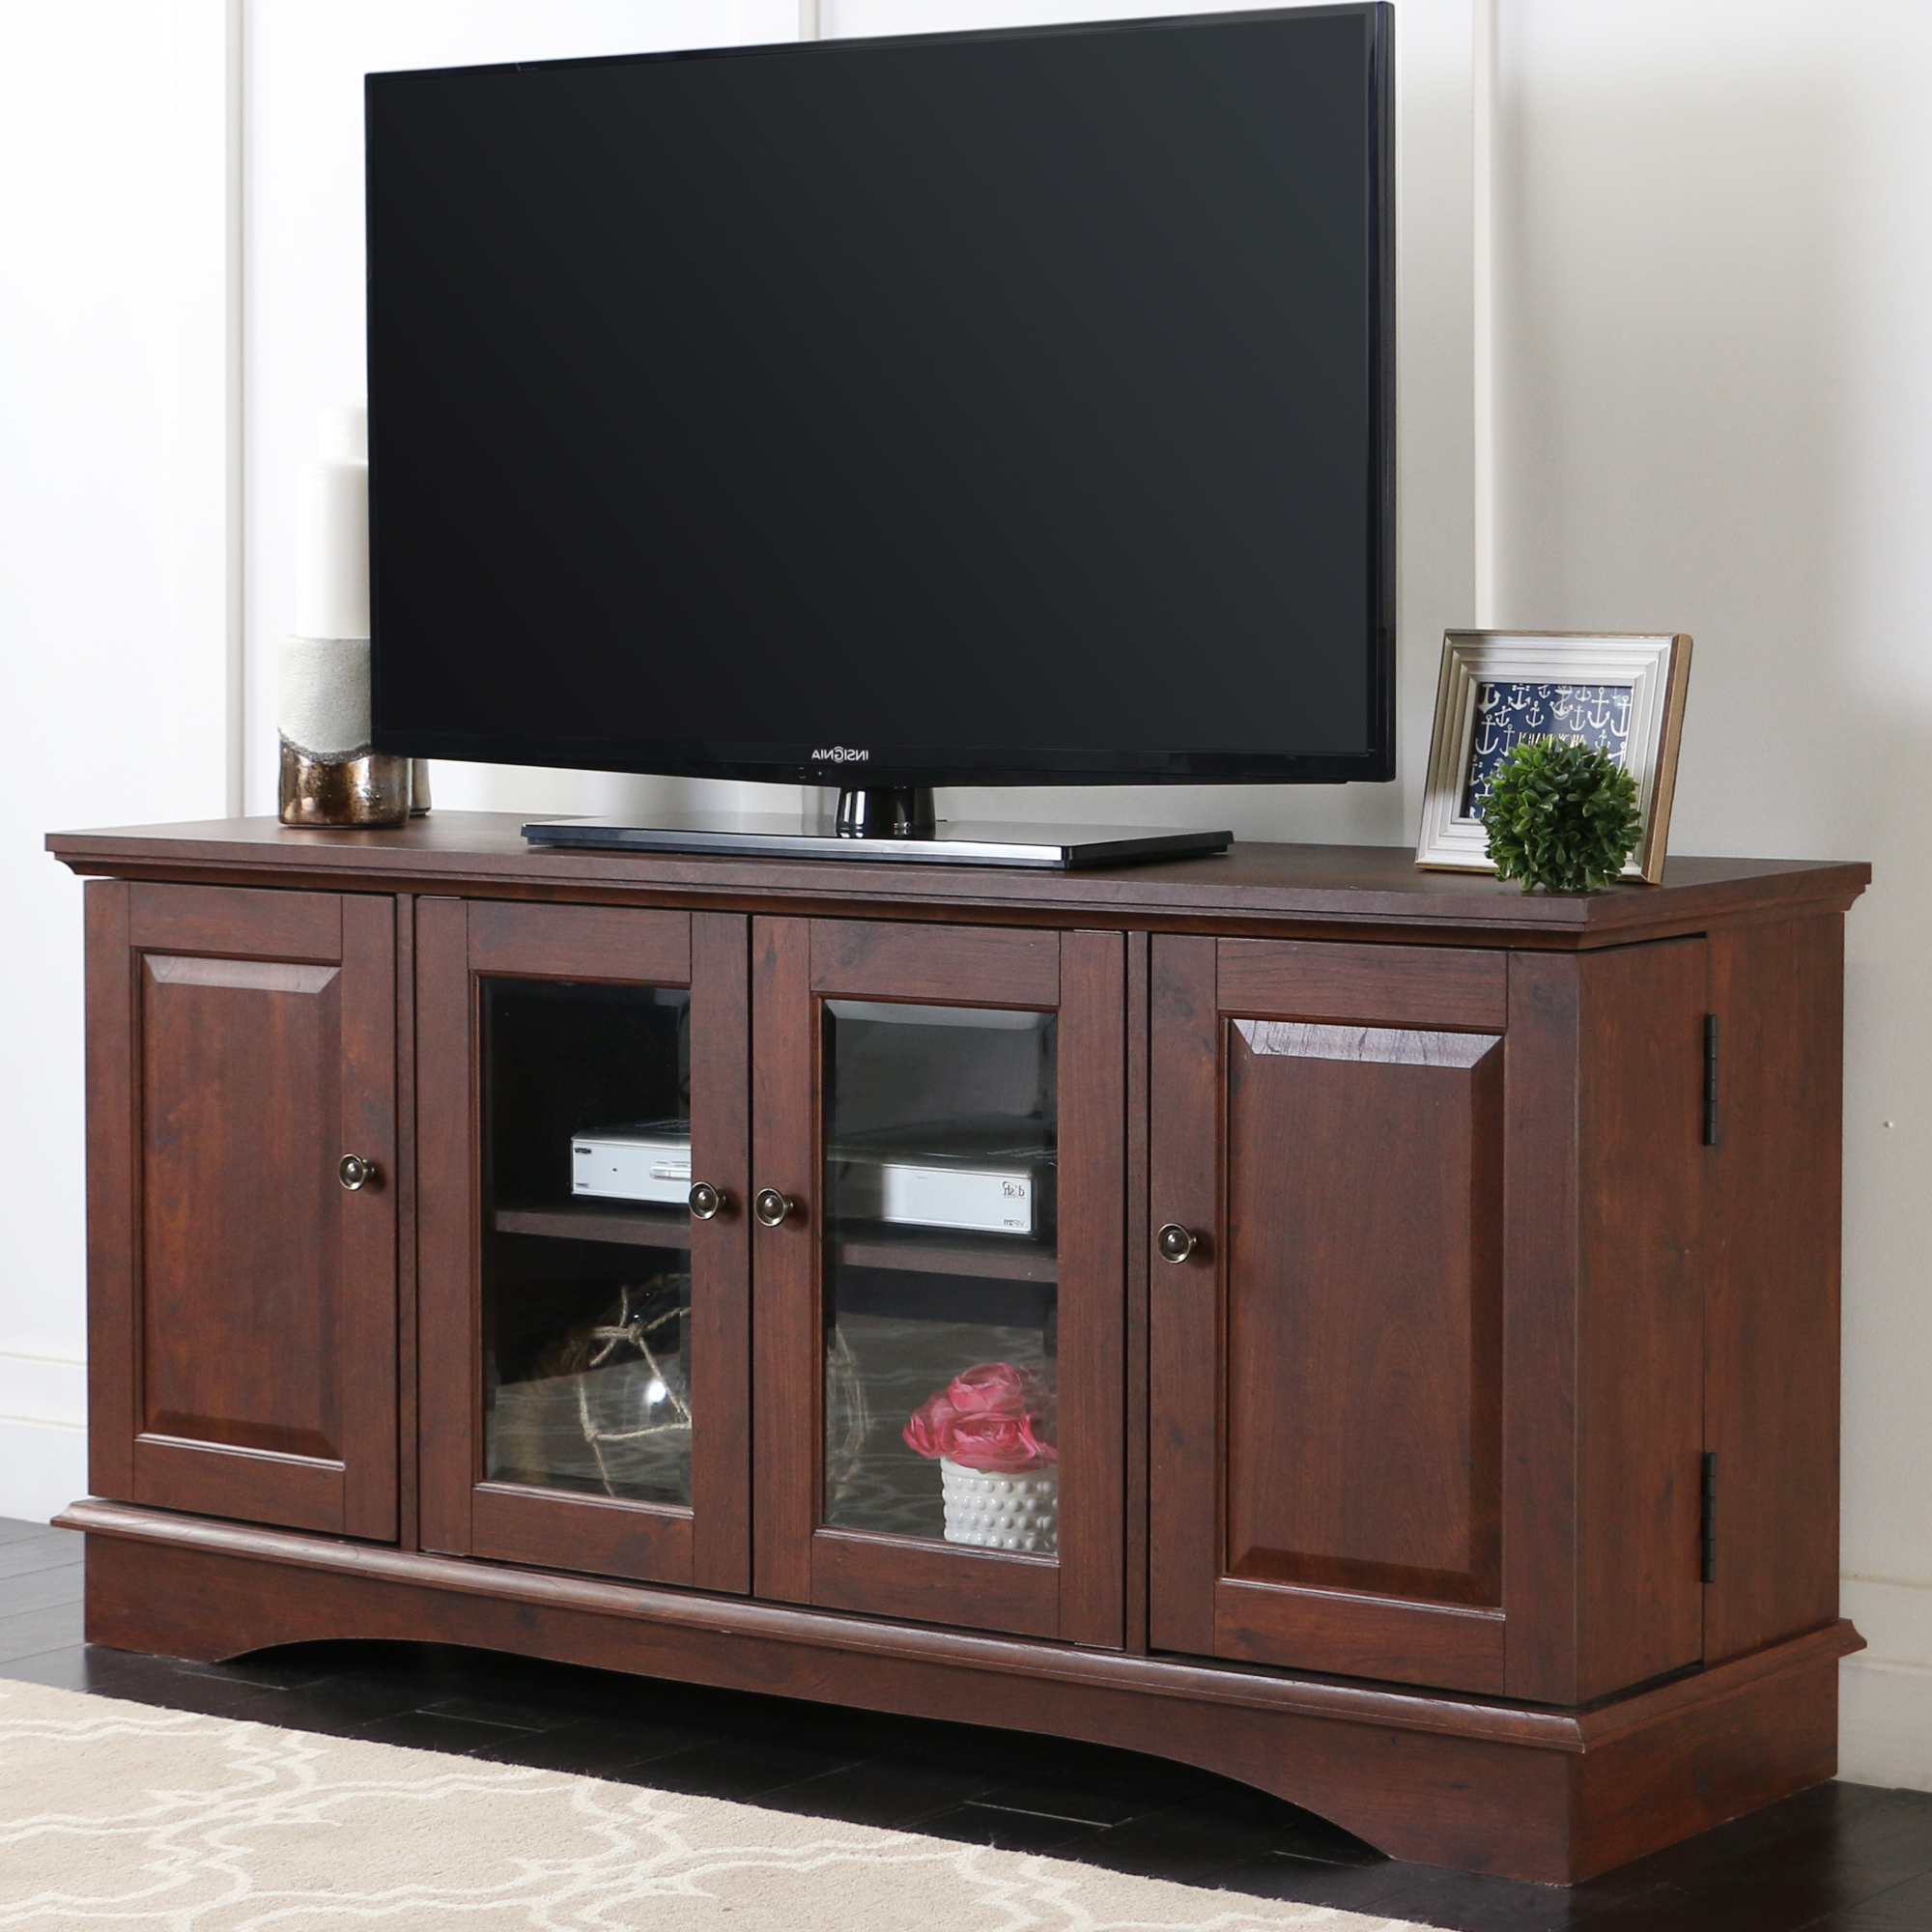 """Widely Used Lansing Tv Stands For Tvs Up To 55"""" Throughout Walker Edison Wood Tv Stand For Tvs Up To 55""""  Brown (View 23 of 25)"""